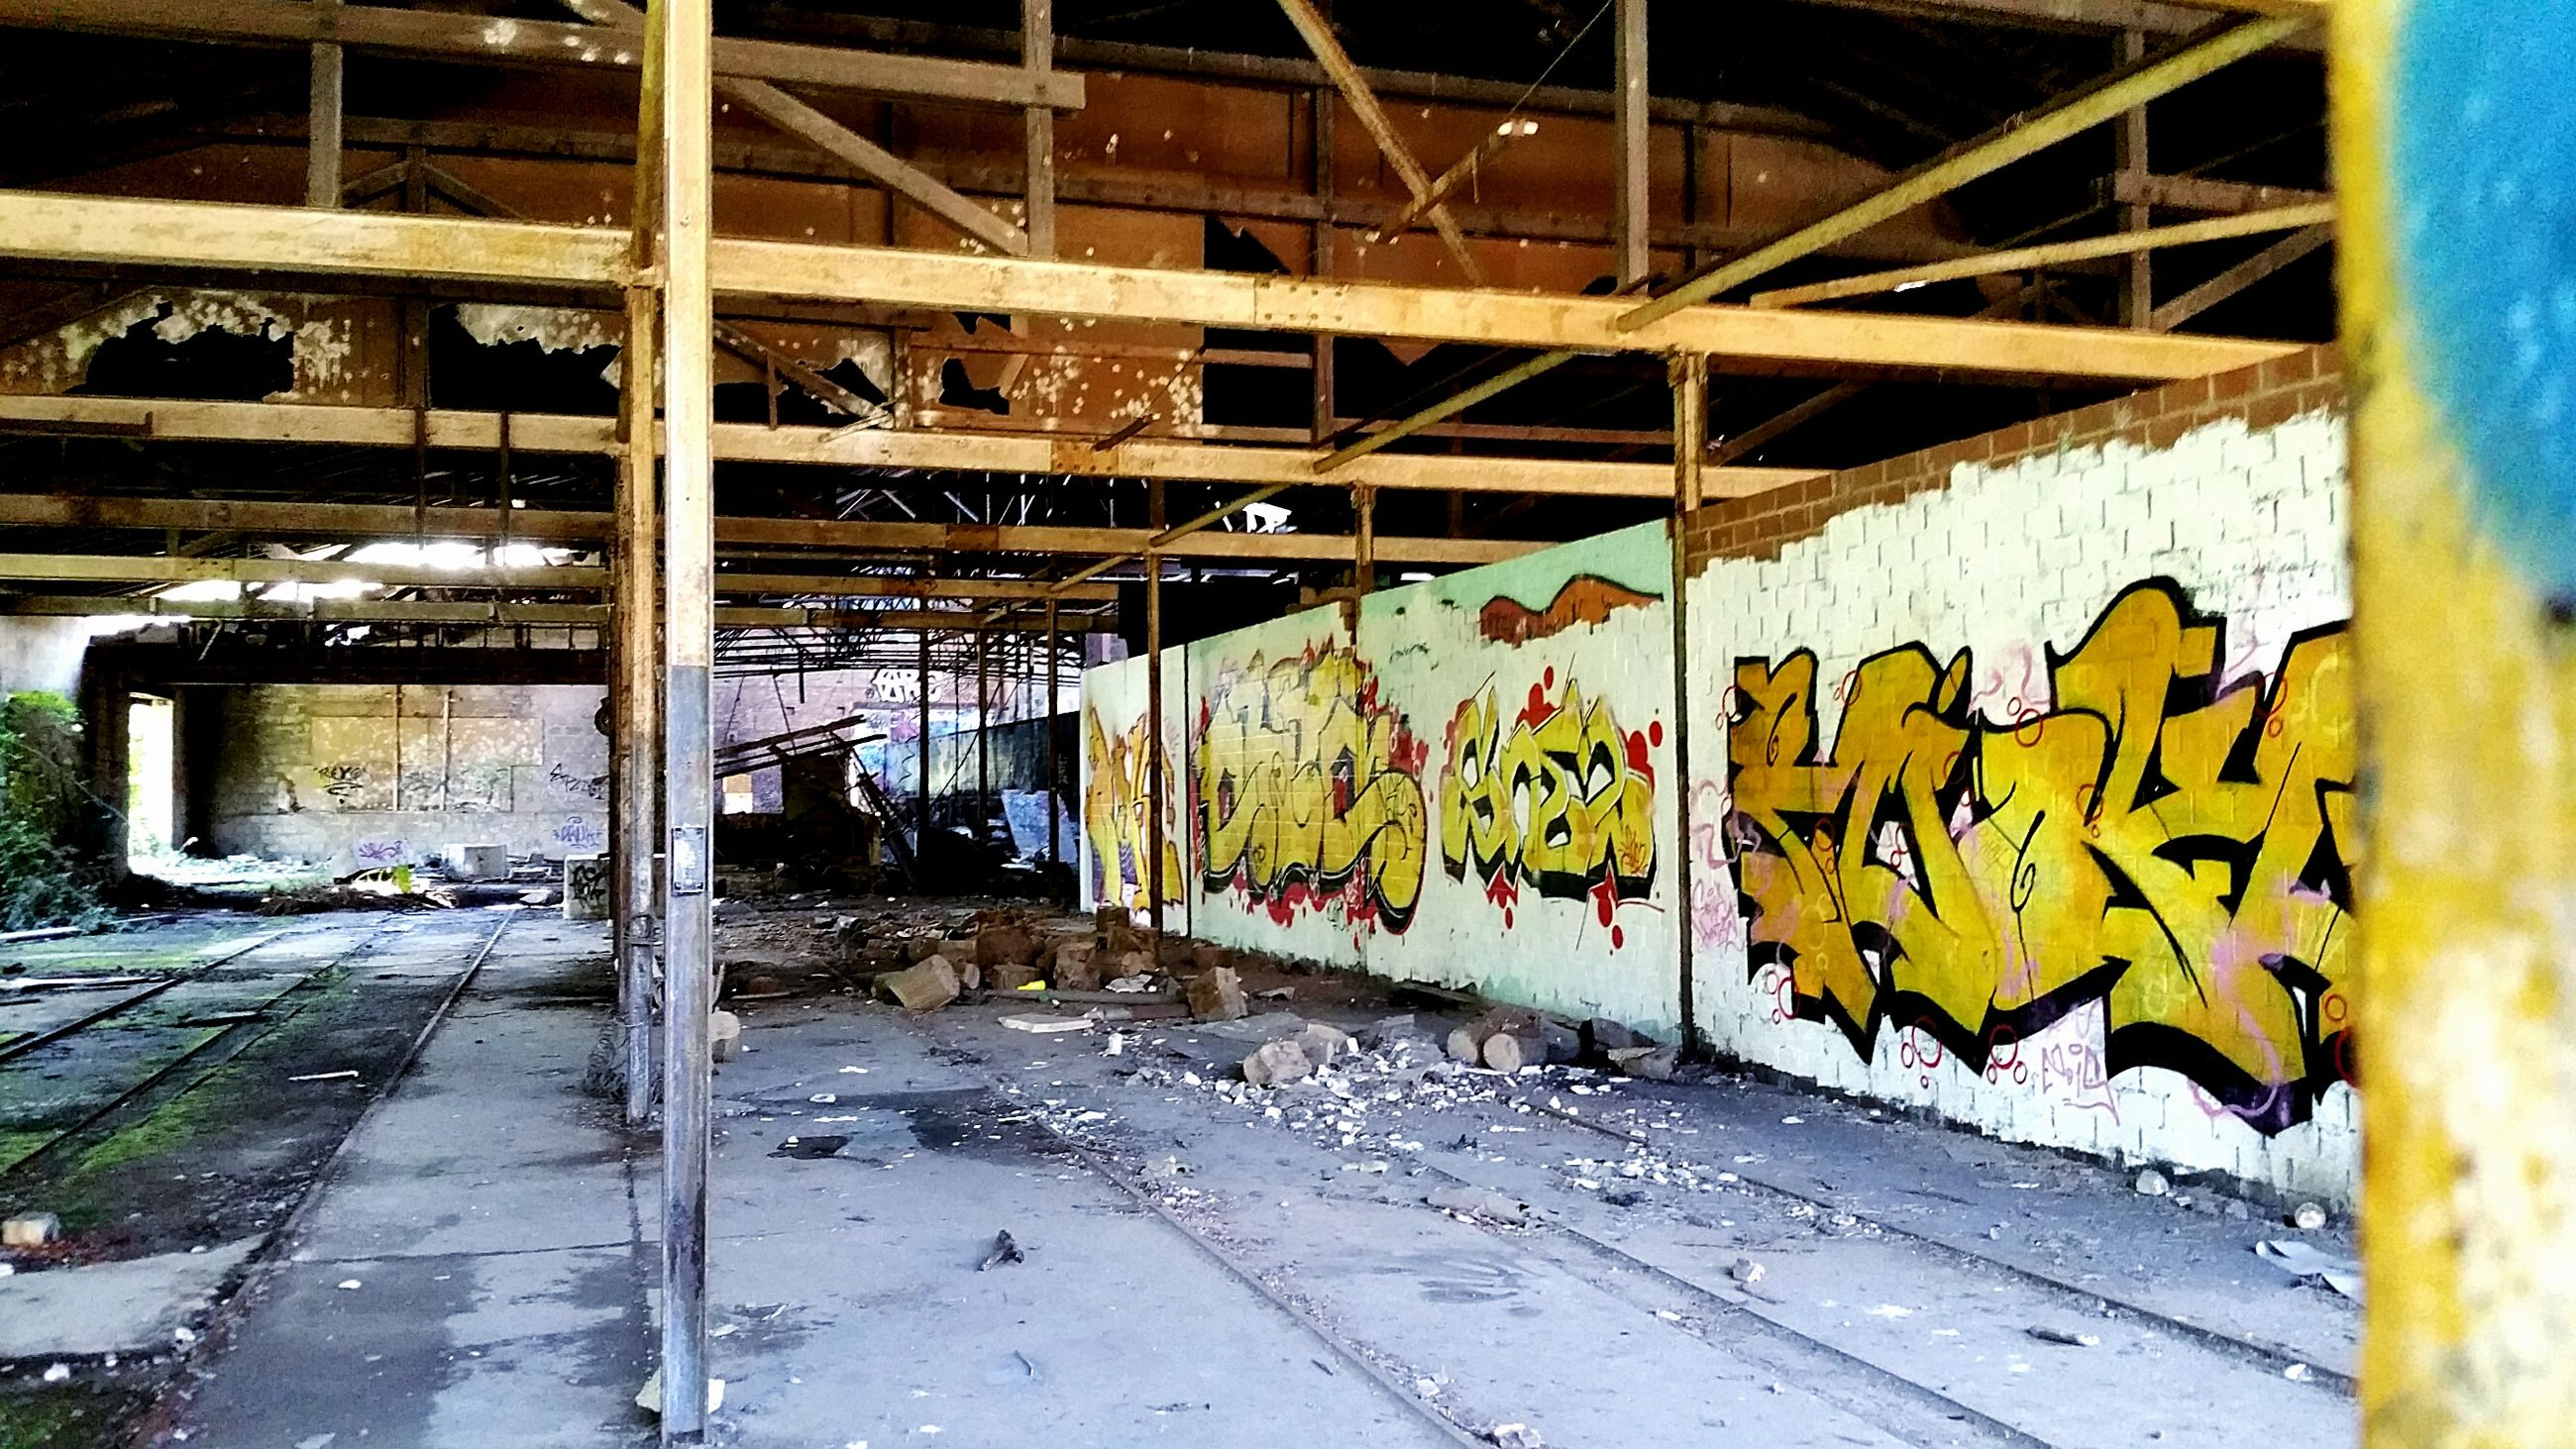 graffiti, architecture, built structure, wall - building feature, abandoned, damaged, building exterior, run-down, obsolete, deterioration, art, text, street art, creativity, vandalism, weathered, art and craft, wall, building, old